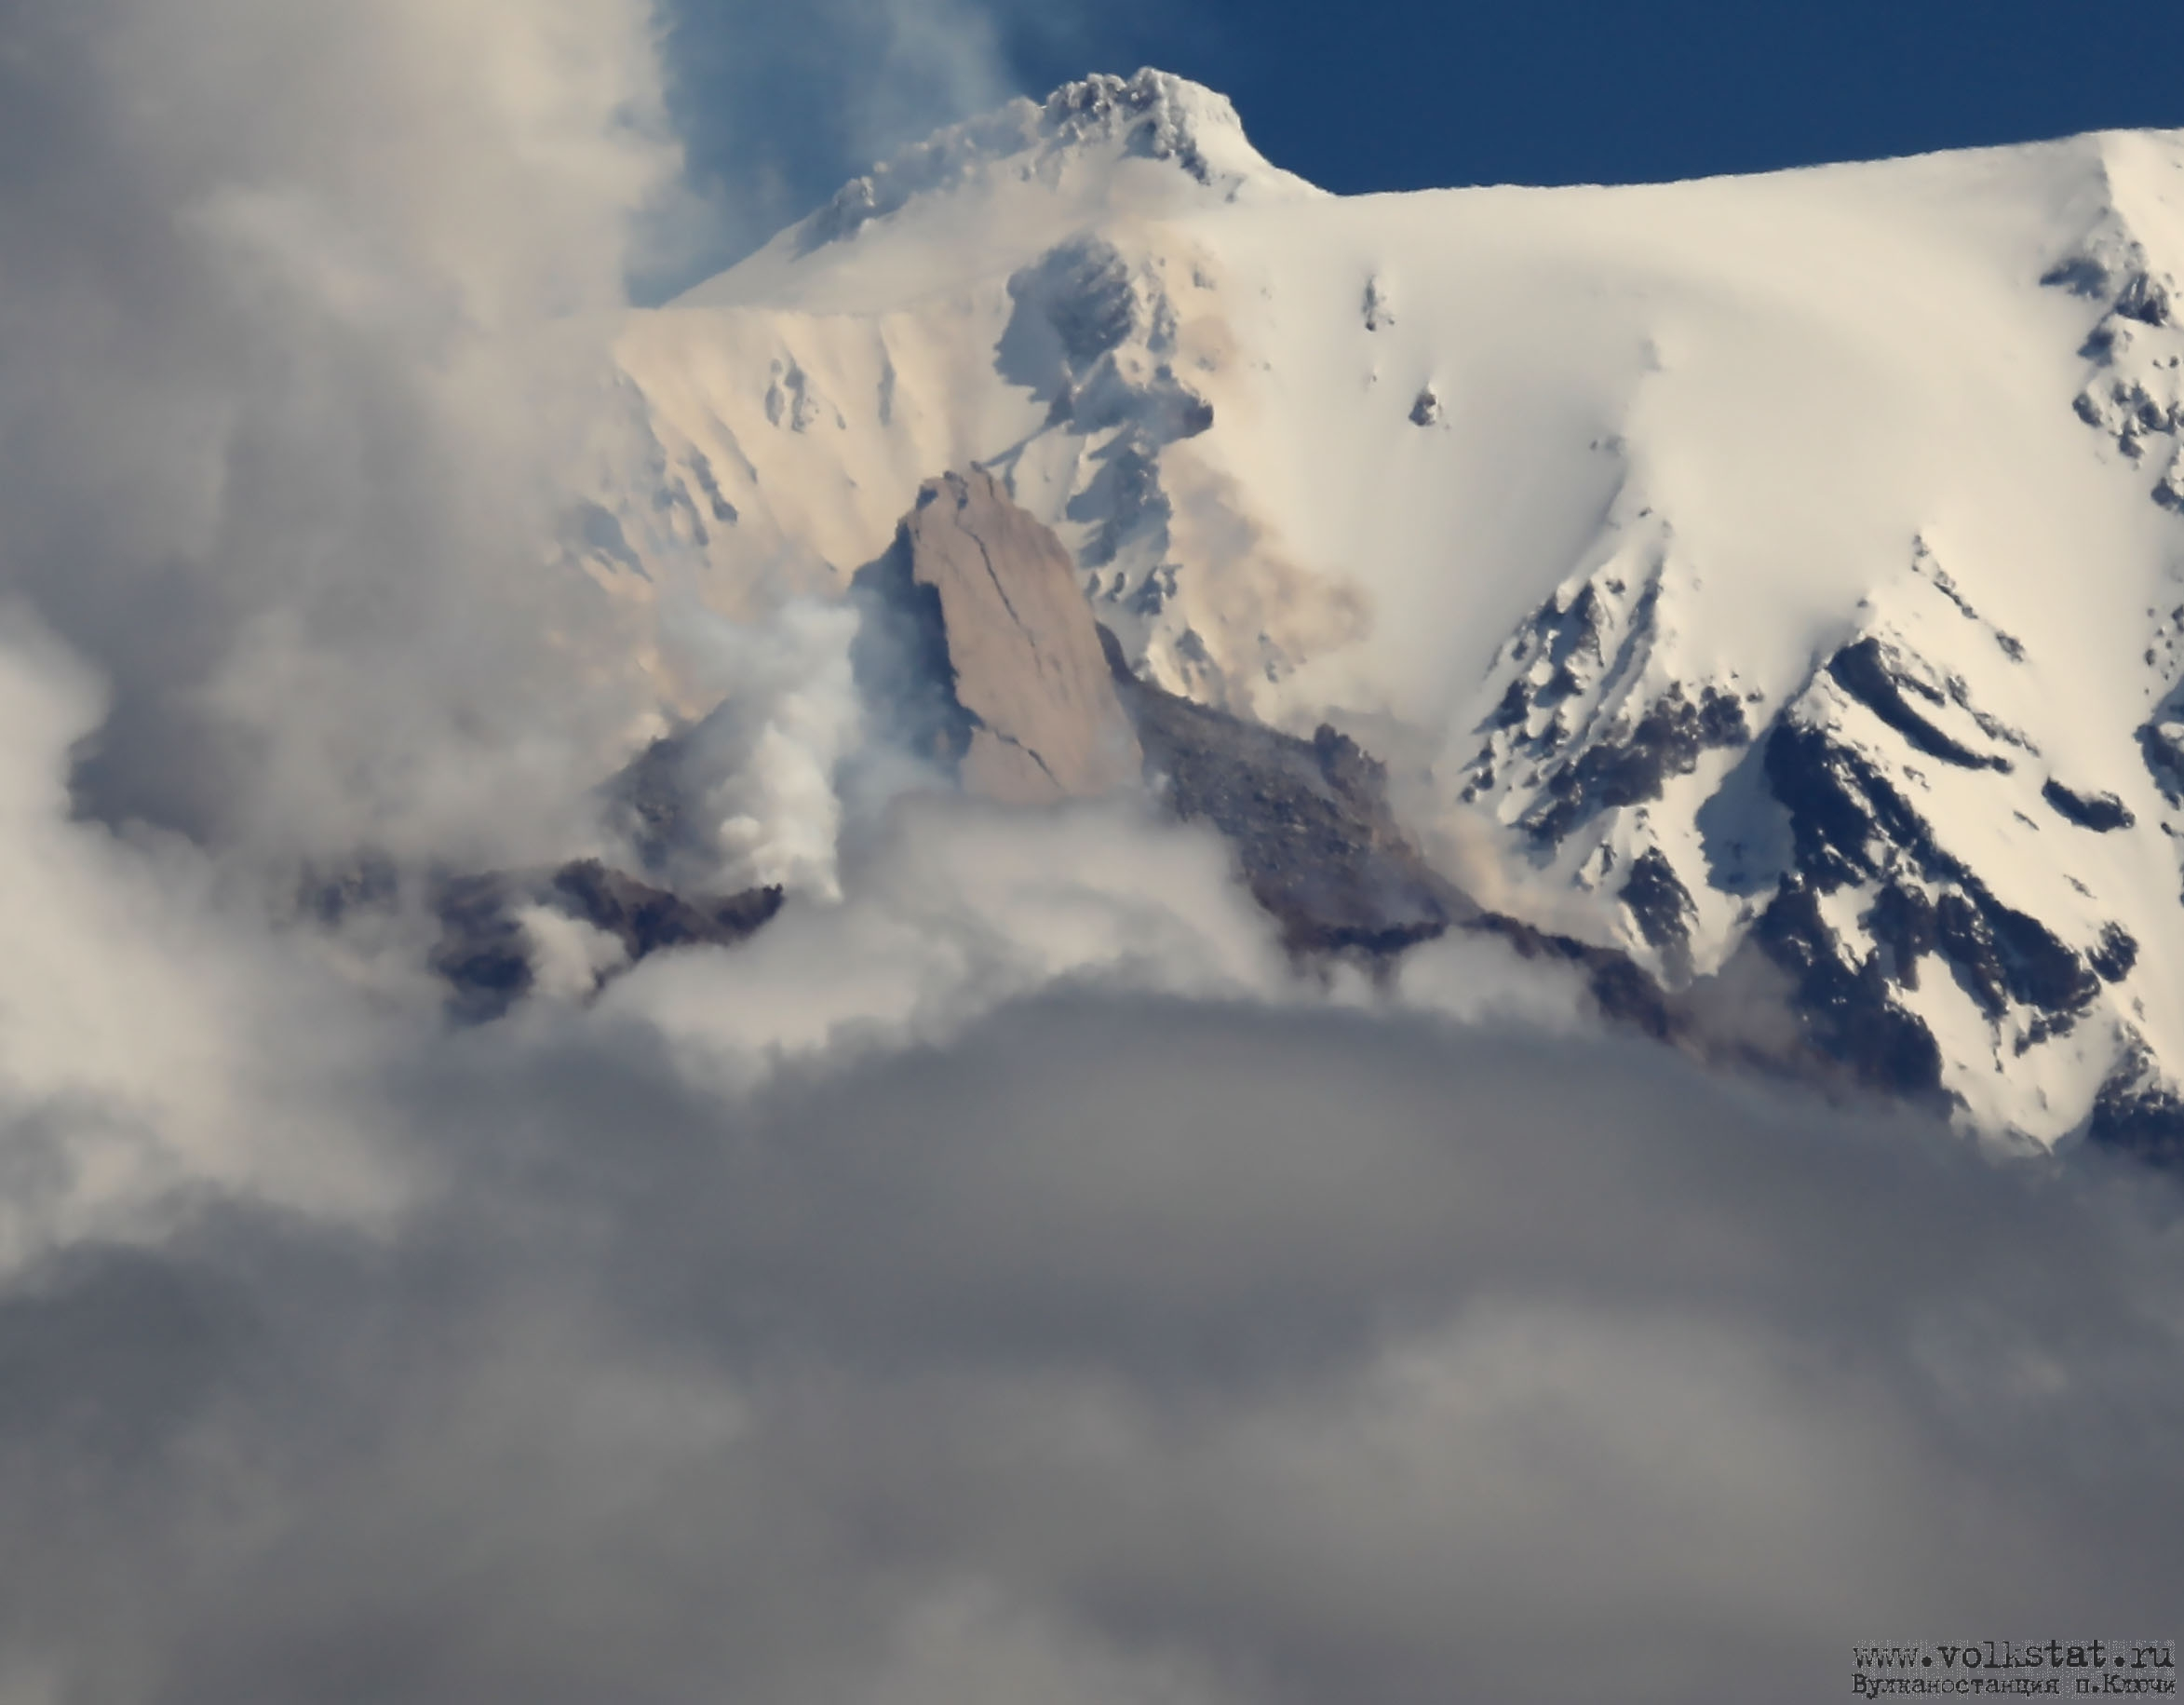 The lava dome's cracks indicates its instability (image: volkstat.ru)